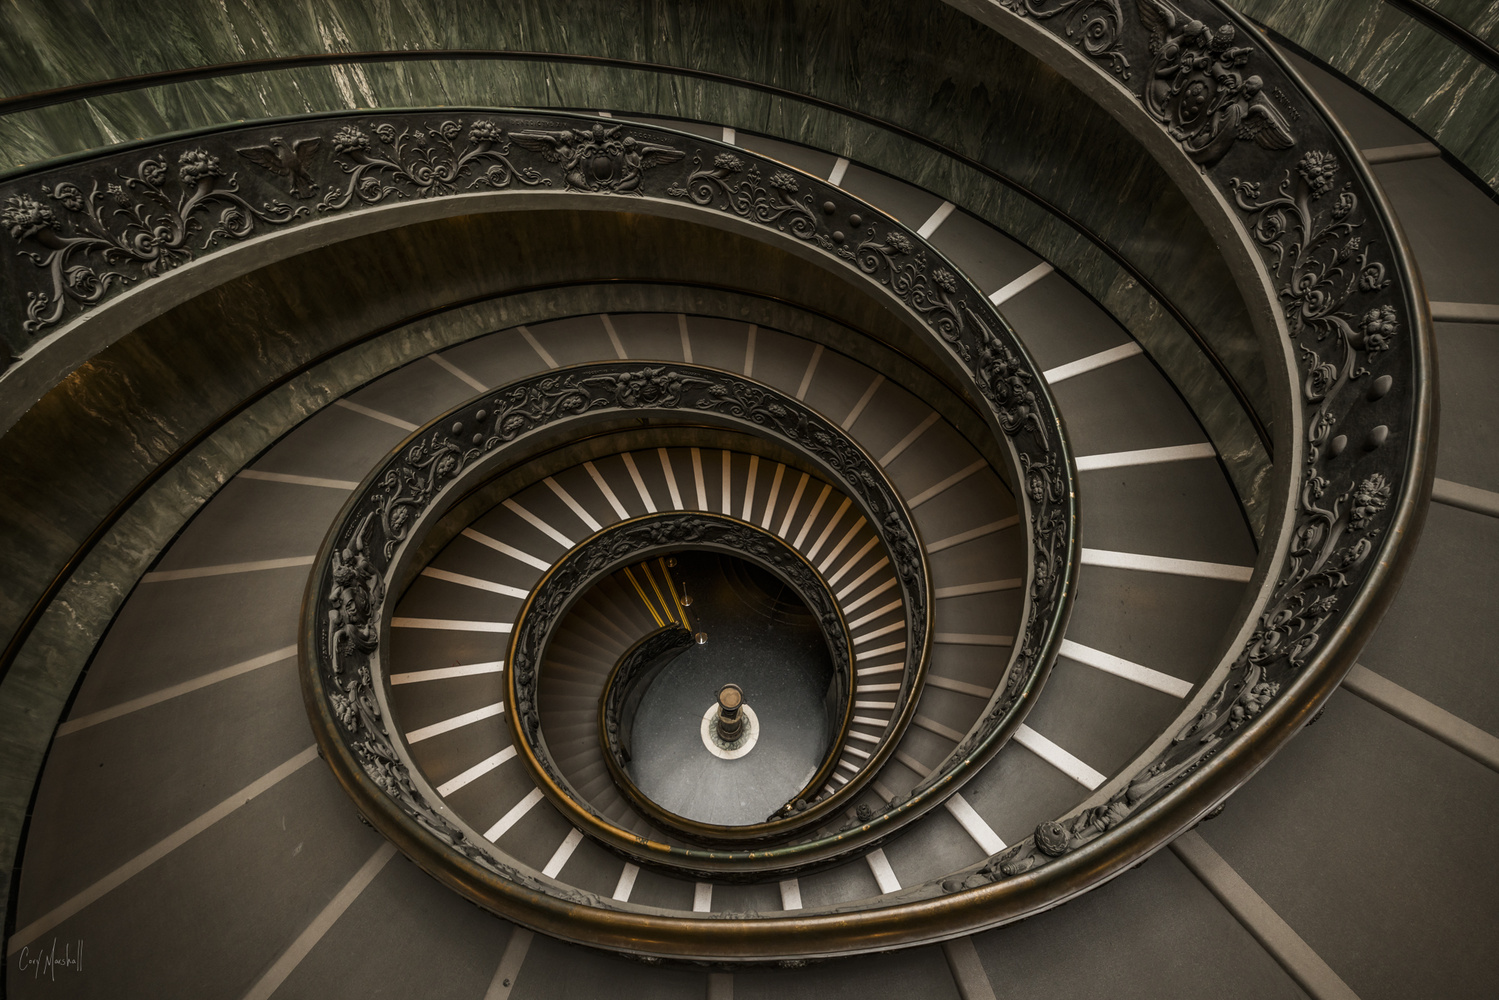 Spirals by Cory Marshall